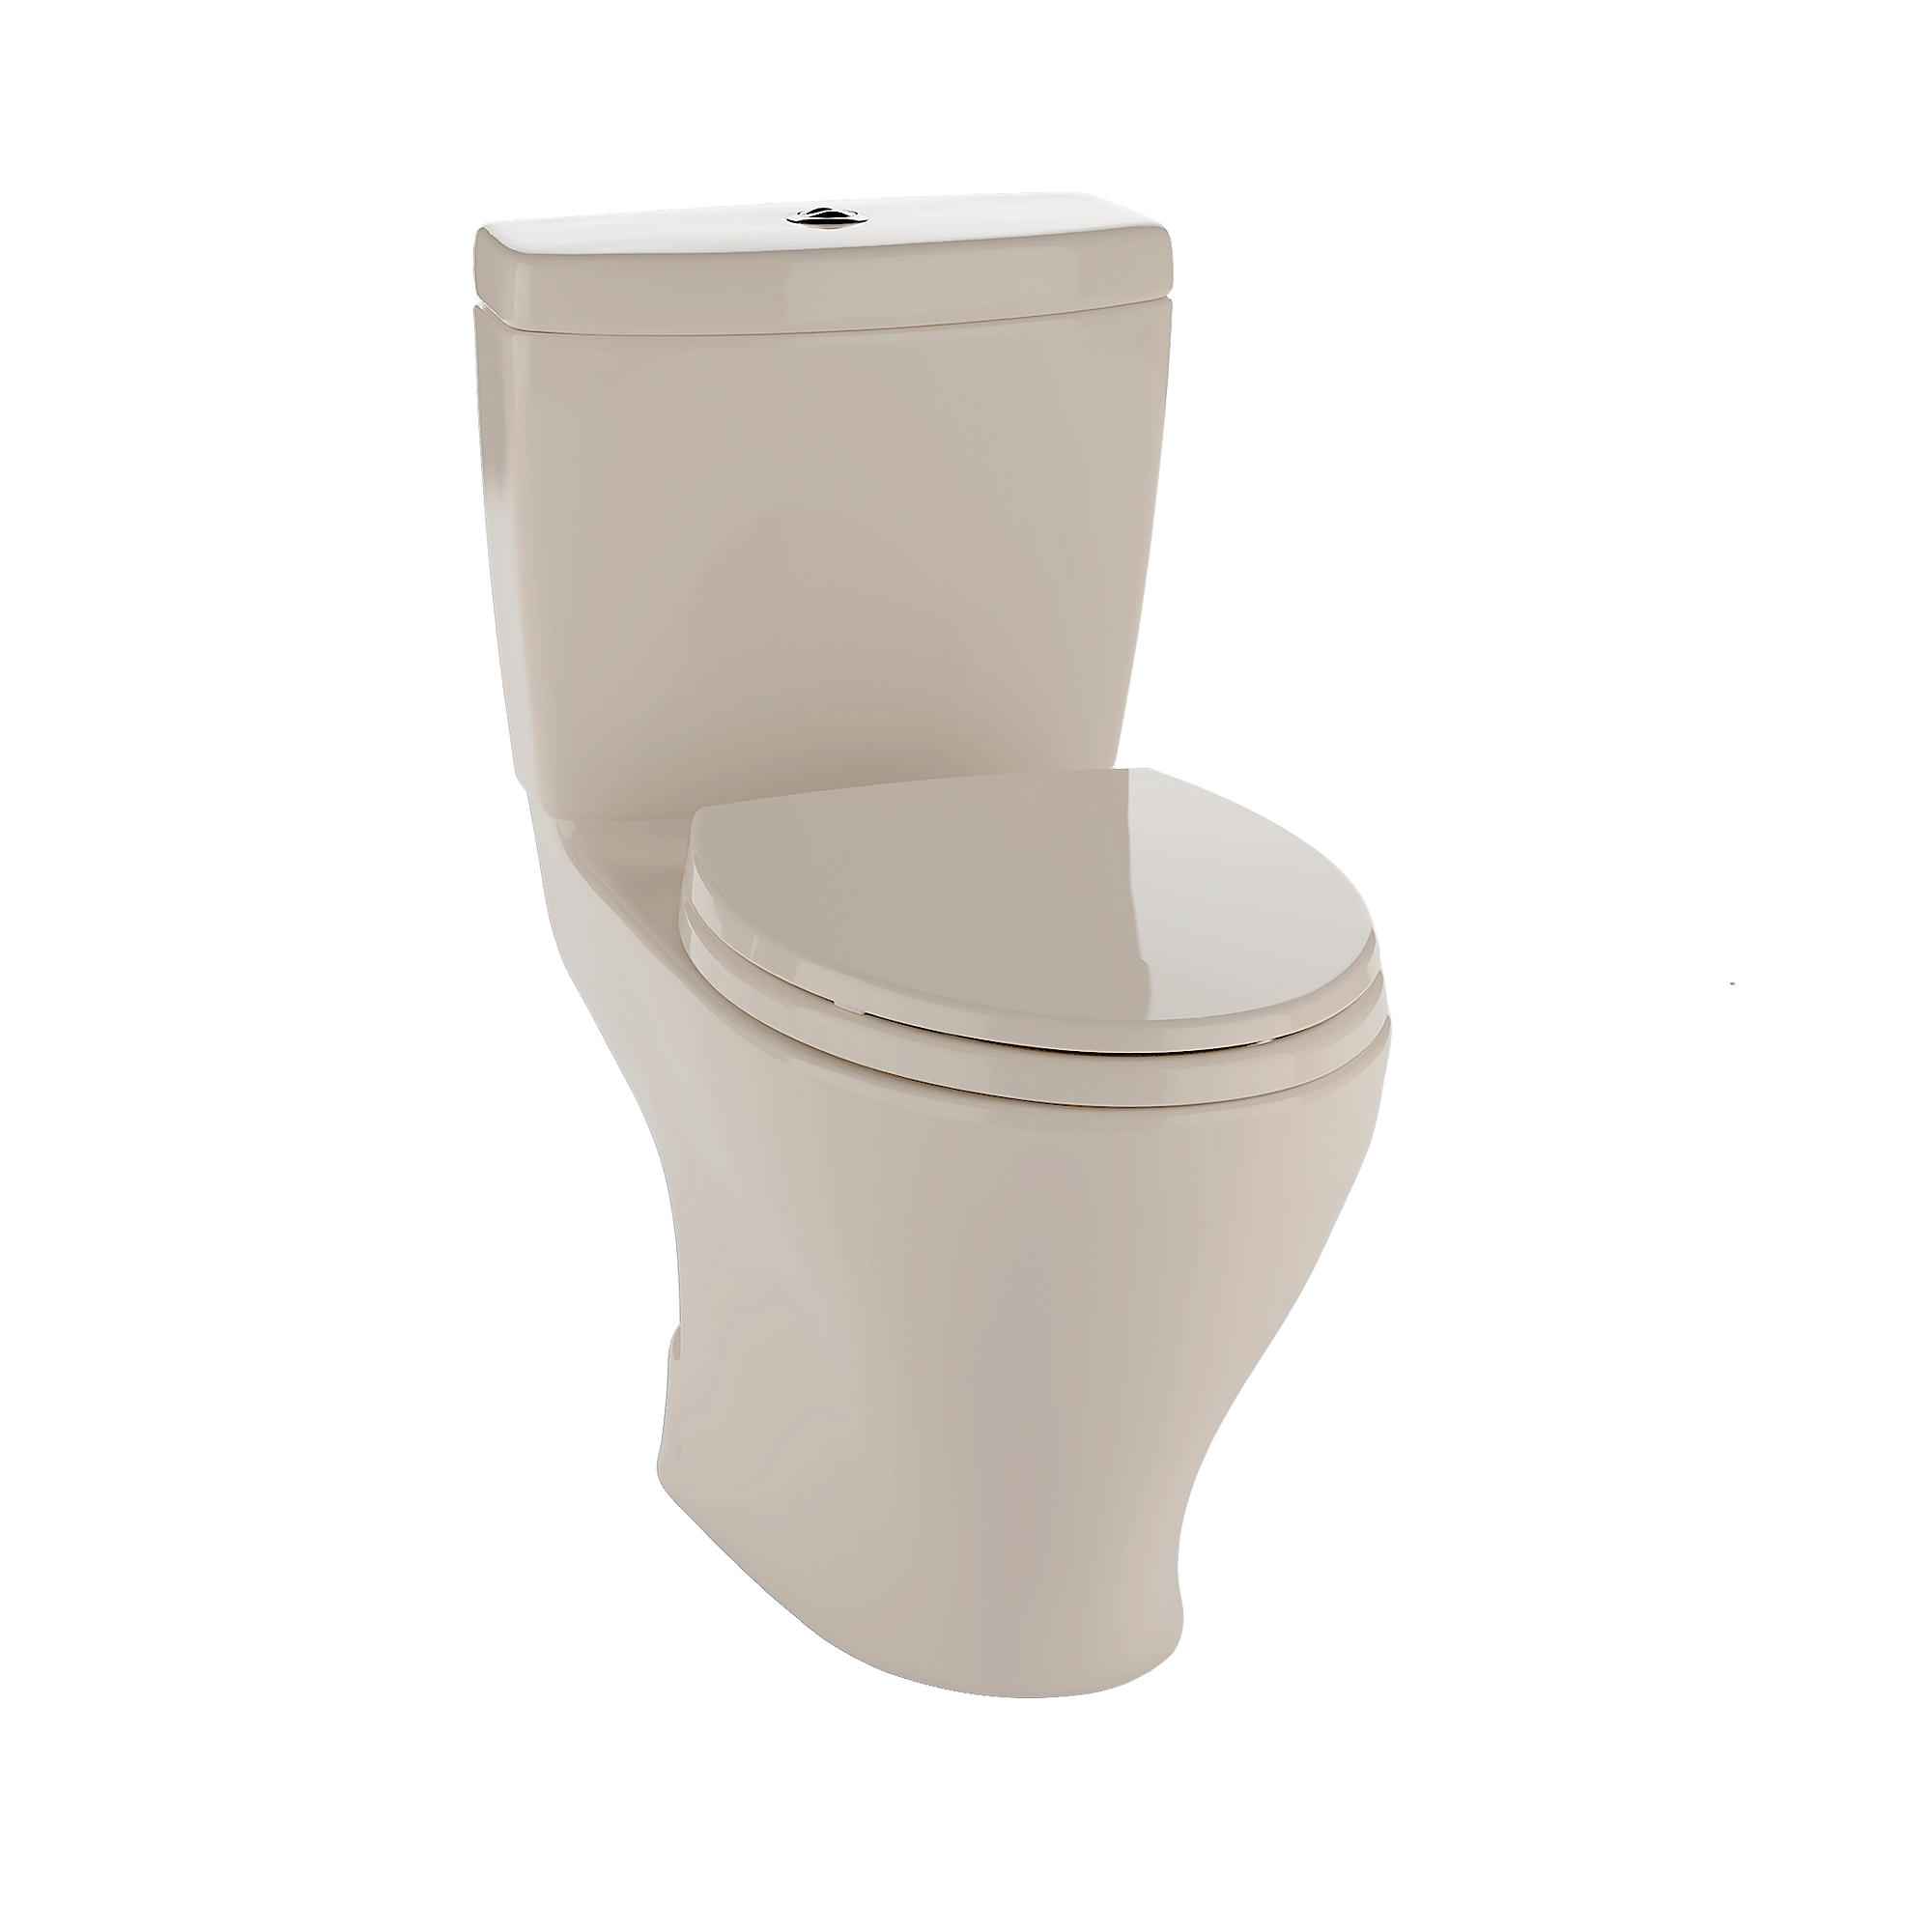 Cst416m 03 aquia ii dual flush two piece toilet  1 6 gpf   0 9 gpf  elongated bowl 0